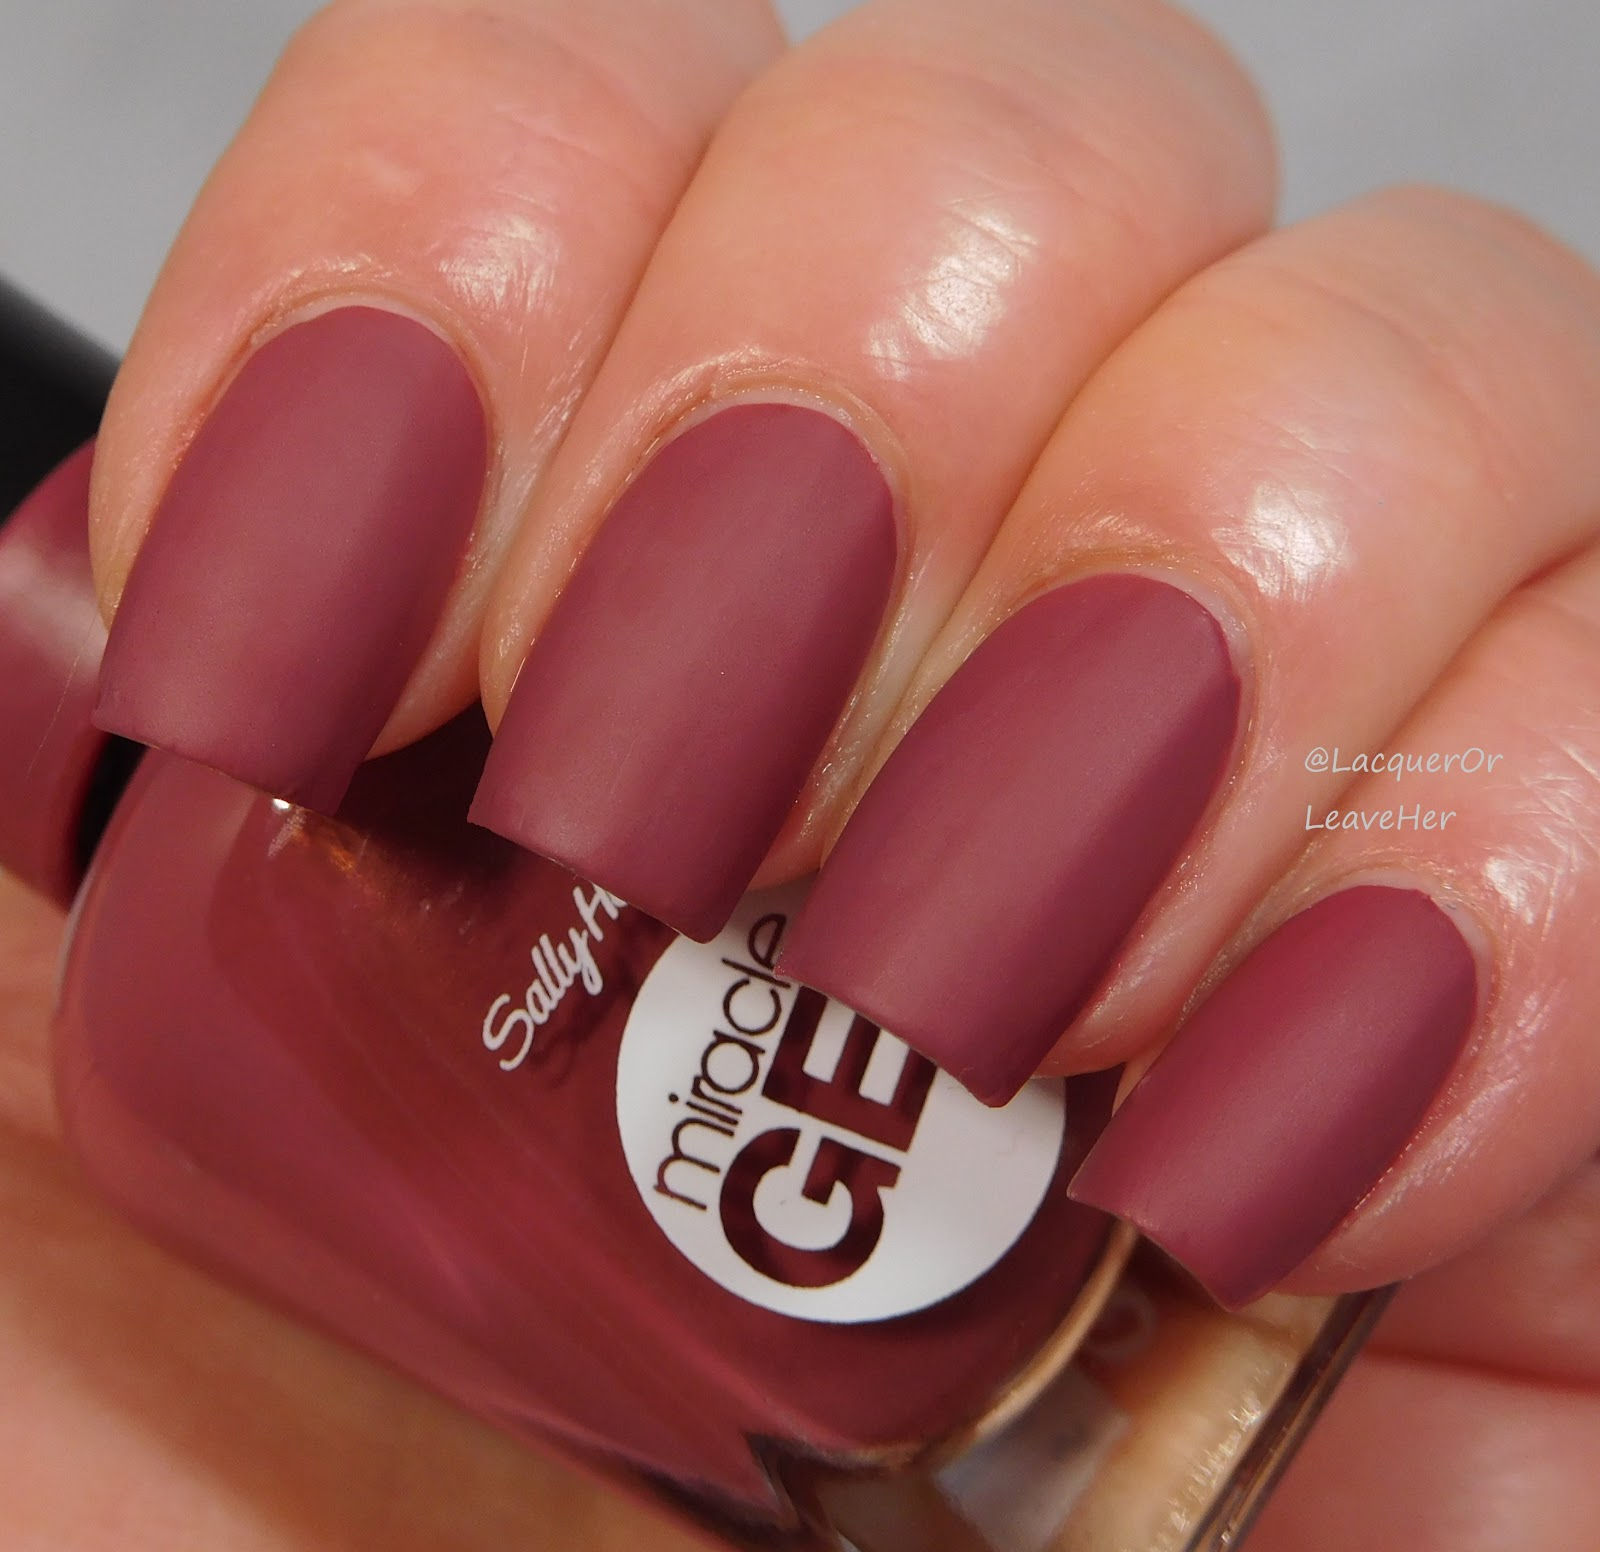 Lacquer Or Leave Her Sally Hansen Miracle Gel Topcoat Over Gorgeous Colors